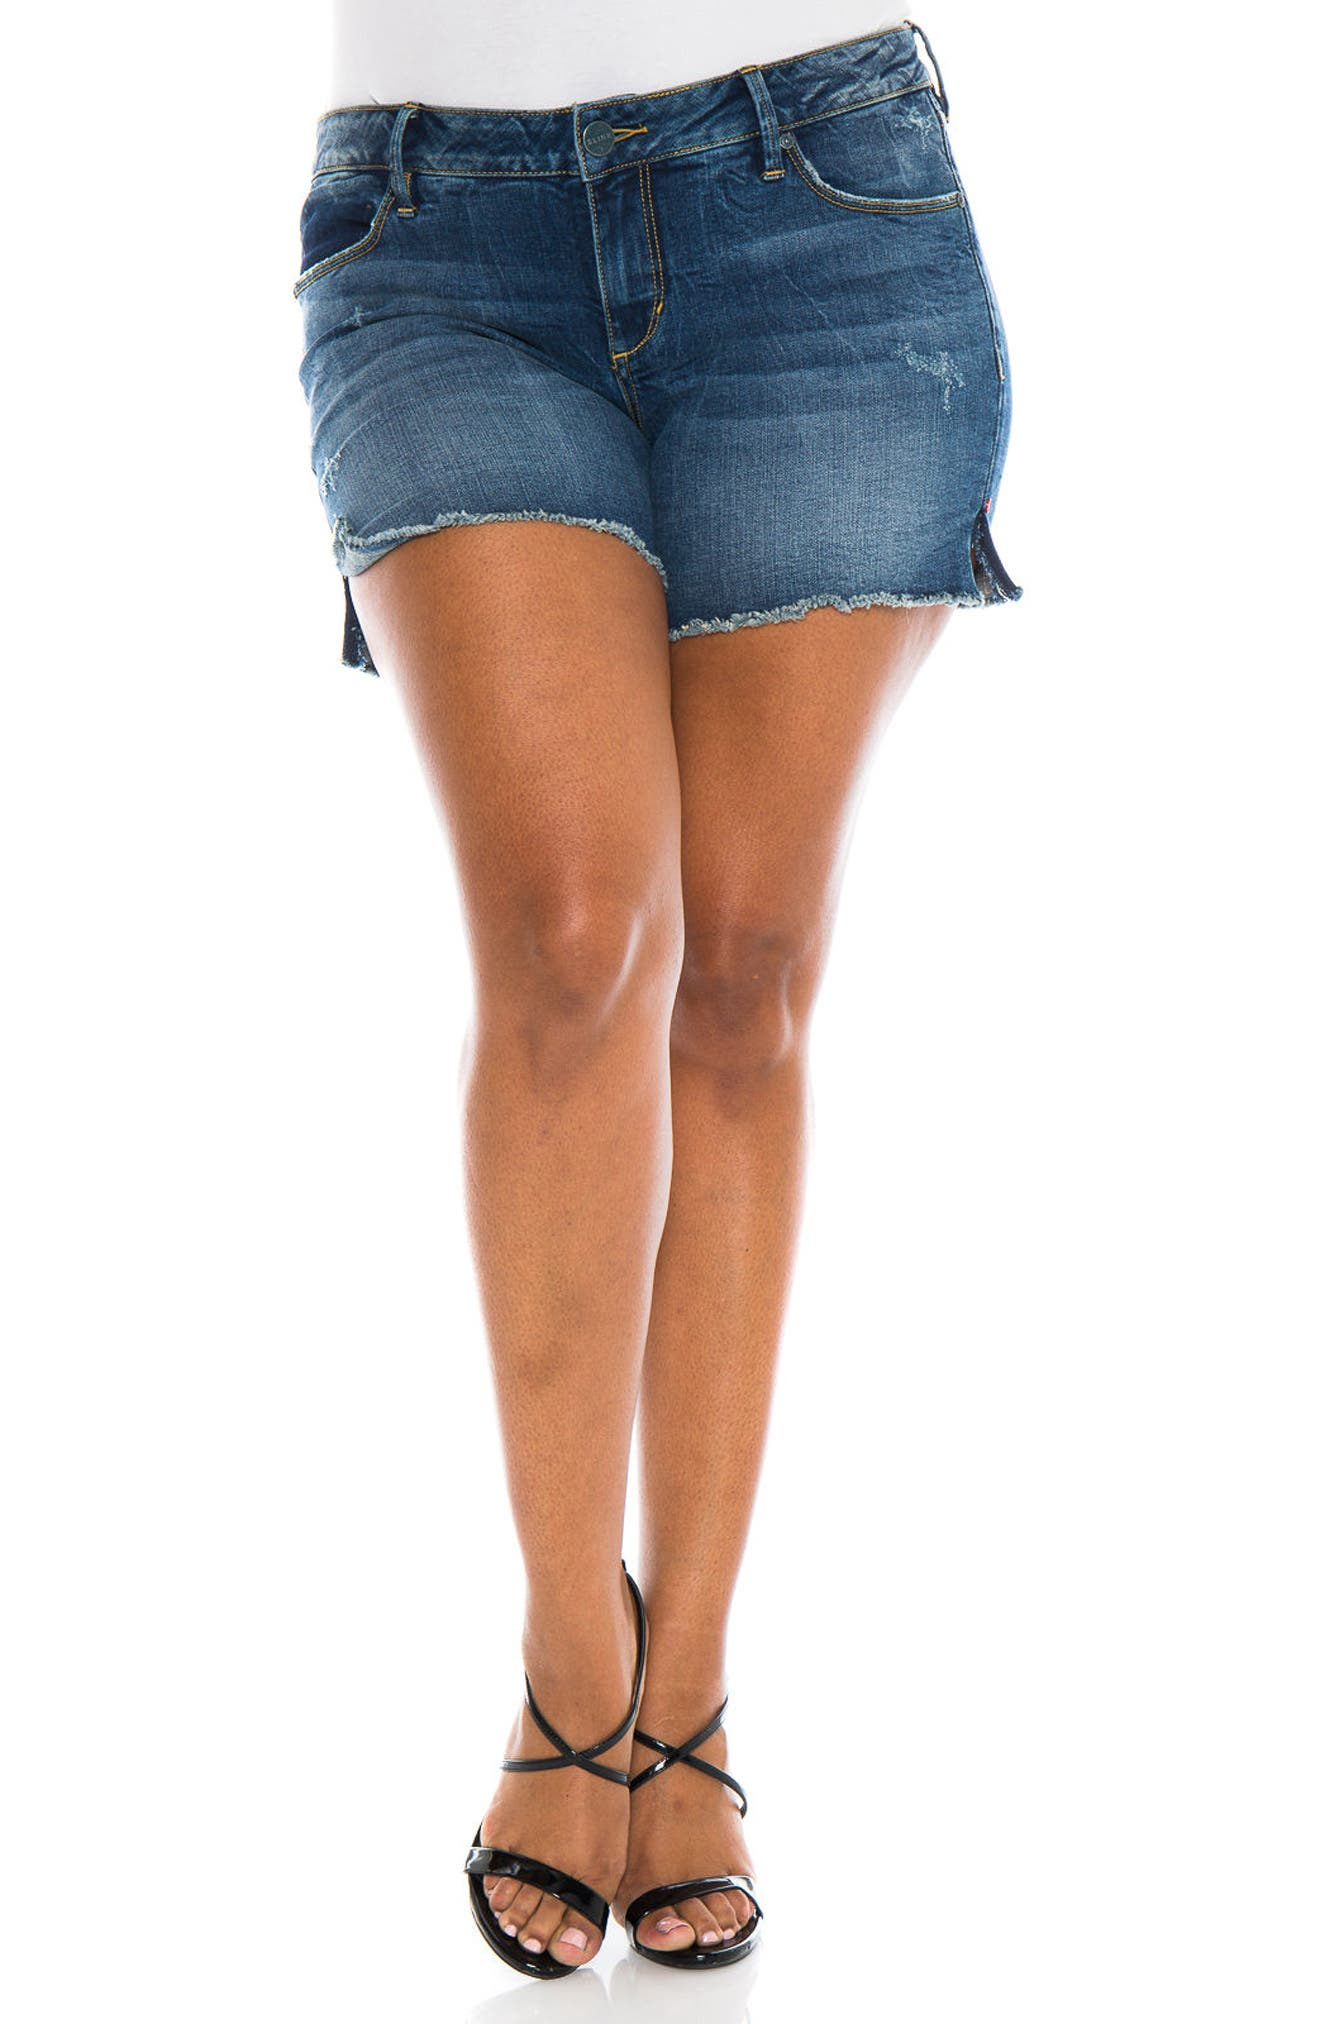 SLINK Jeans Cutoff Denim Shorts (Caralyn) (Plus Size)